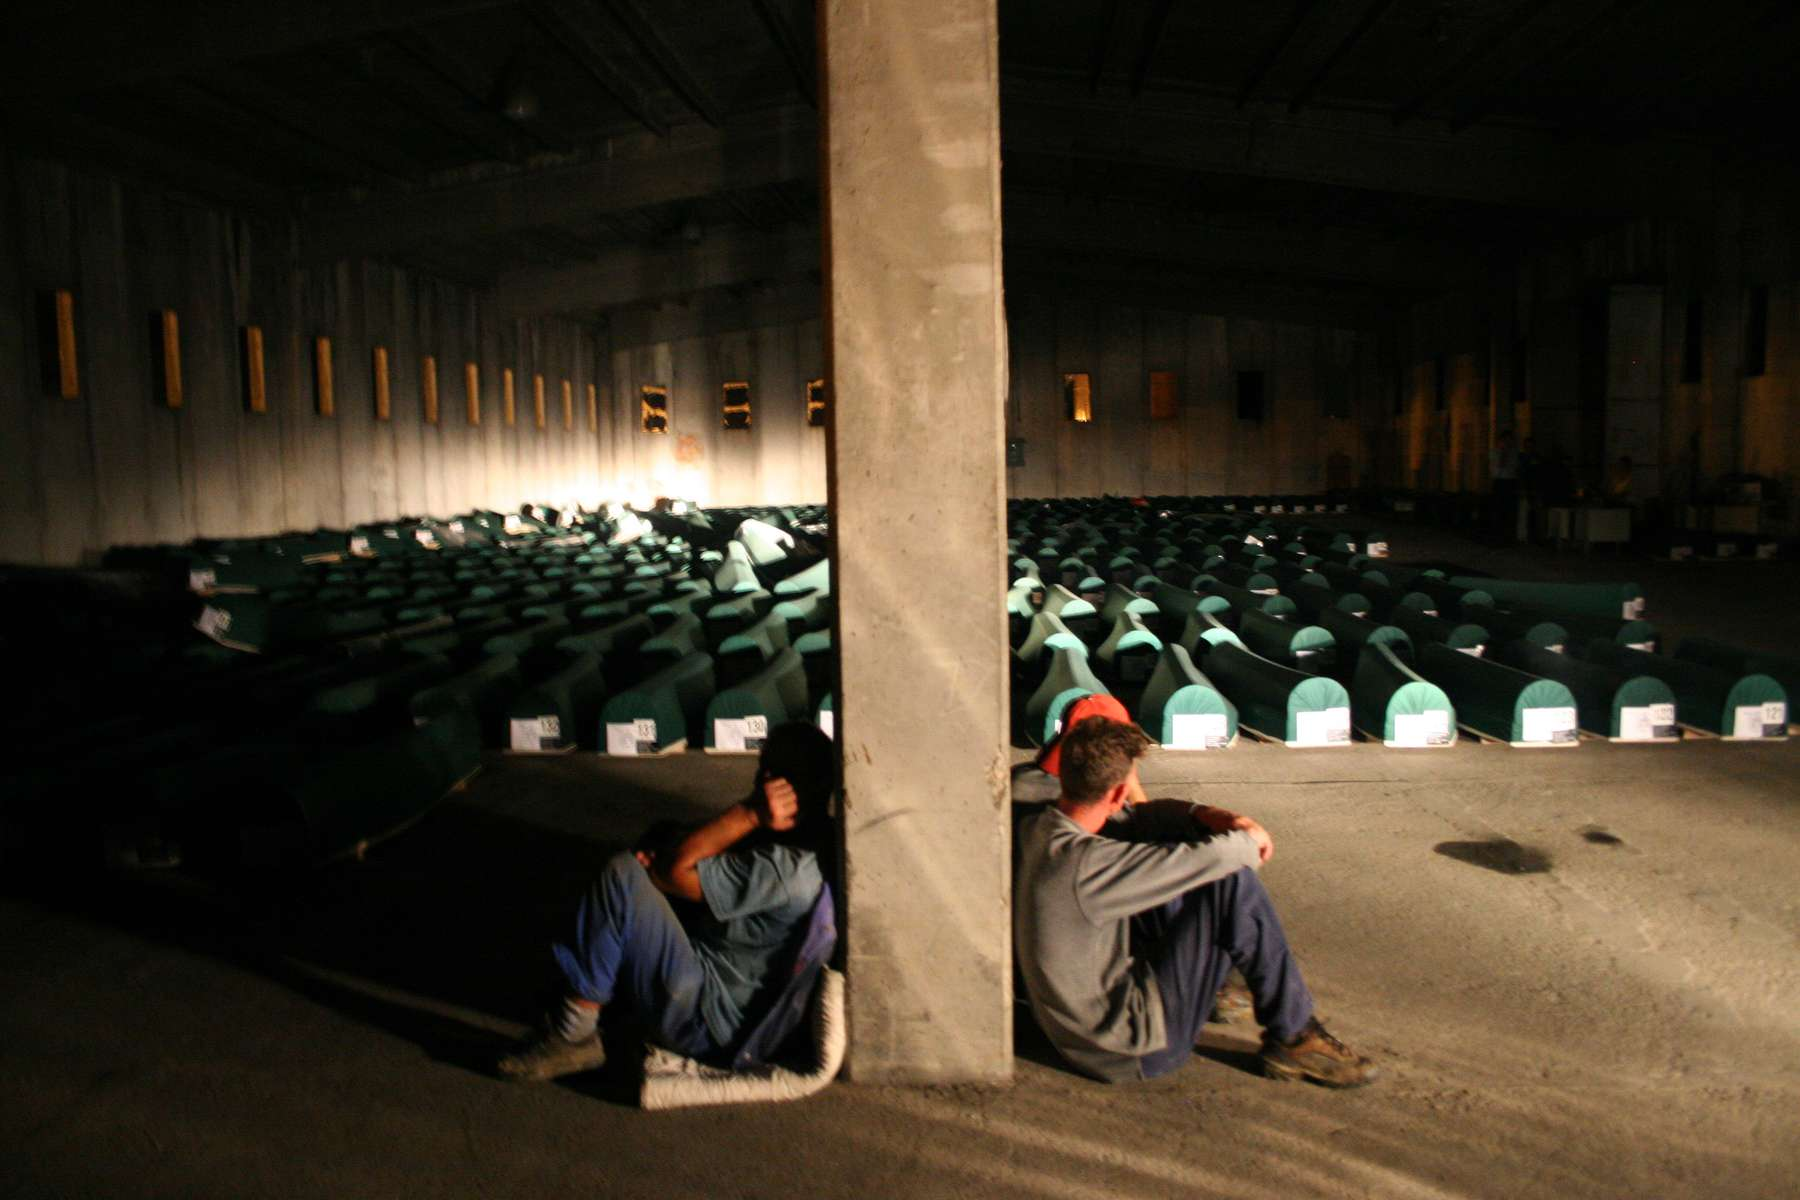 Workmen take a break from moving more than 600 tahuts, traditional Muslim coffins, from a warehouse to the site of the Srebrenica memorial across the road, where they will be buried as part of the July 11 commemoration ceremonies marking the tenth anniversary of the massacre. With only the light cast by car headlights to guide them, the men will work all night.